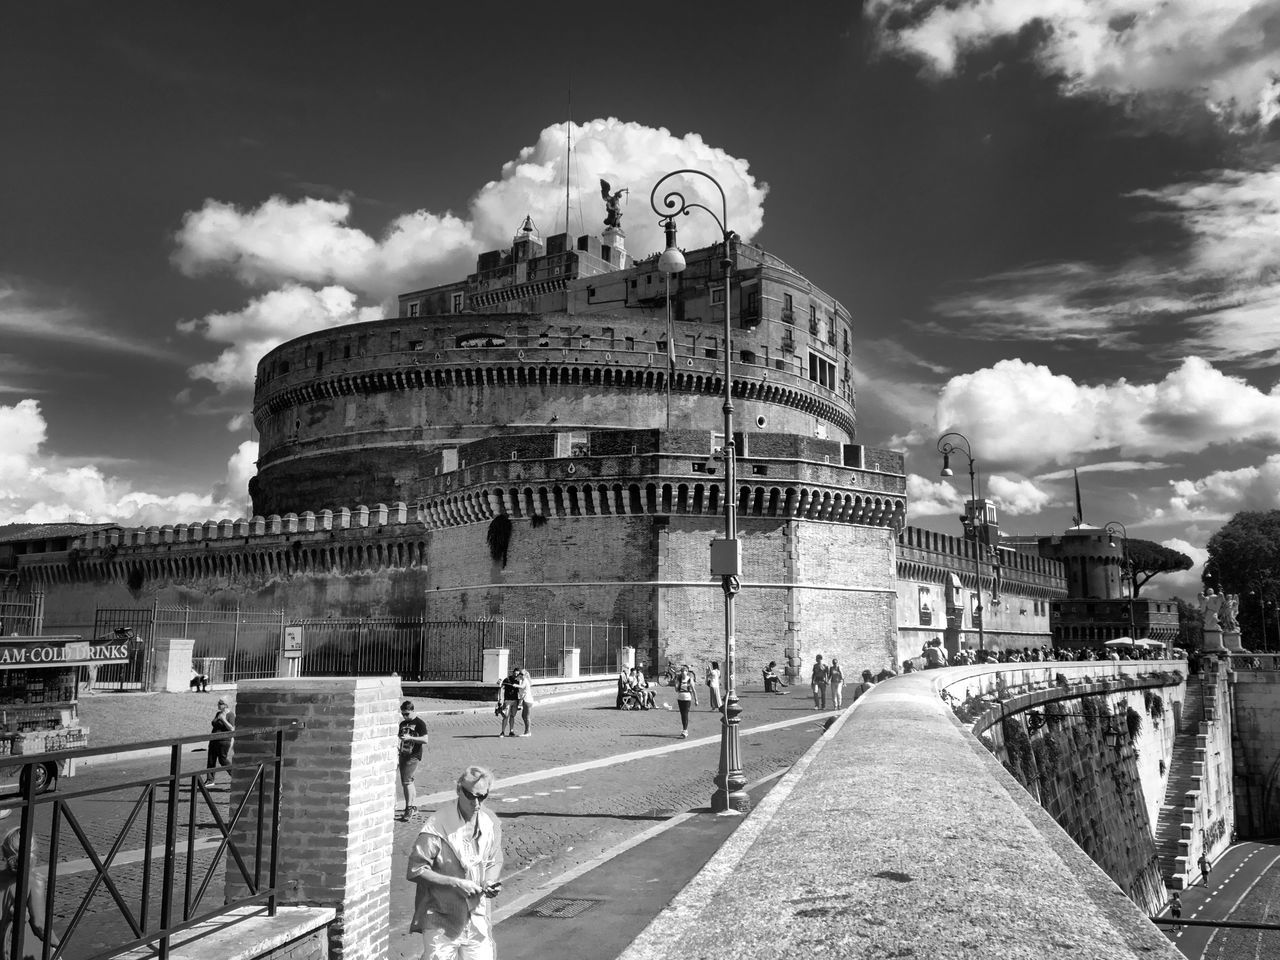 When in Rome 009 Street Black & White Photography VSCO Blackandwhite Black And White Shootermag City Rome Italy AMPt - Street Architecture Monument